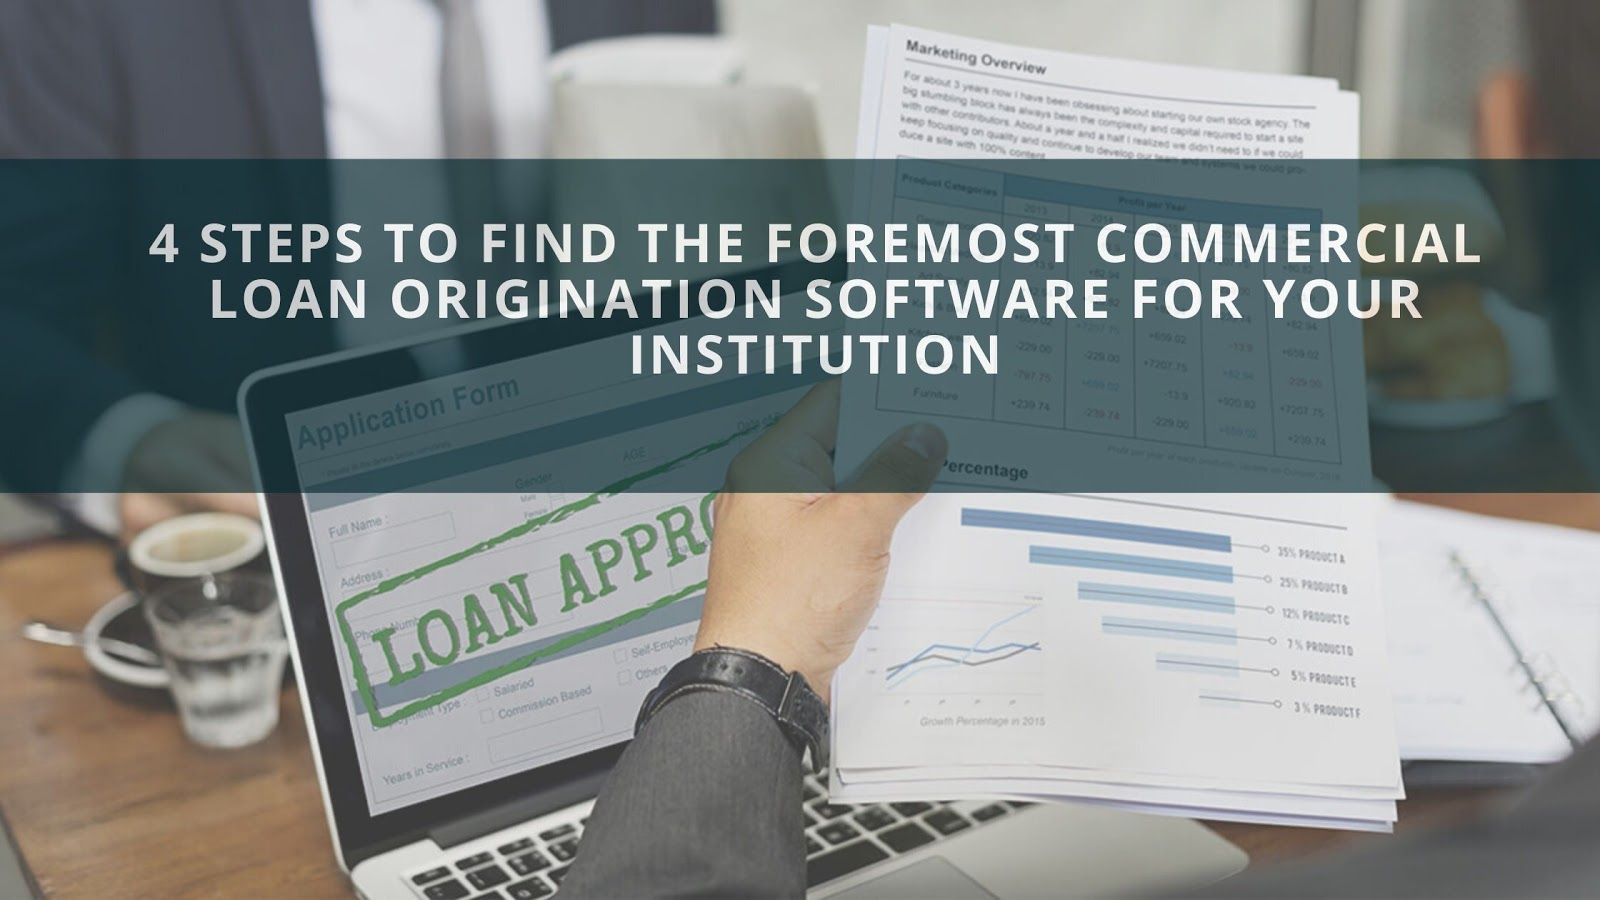 4 Steps to Find the Foremost Commercial Loan Origination Software for Your Institution